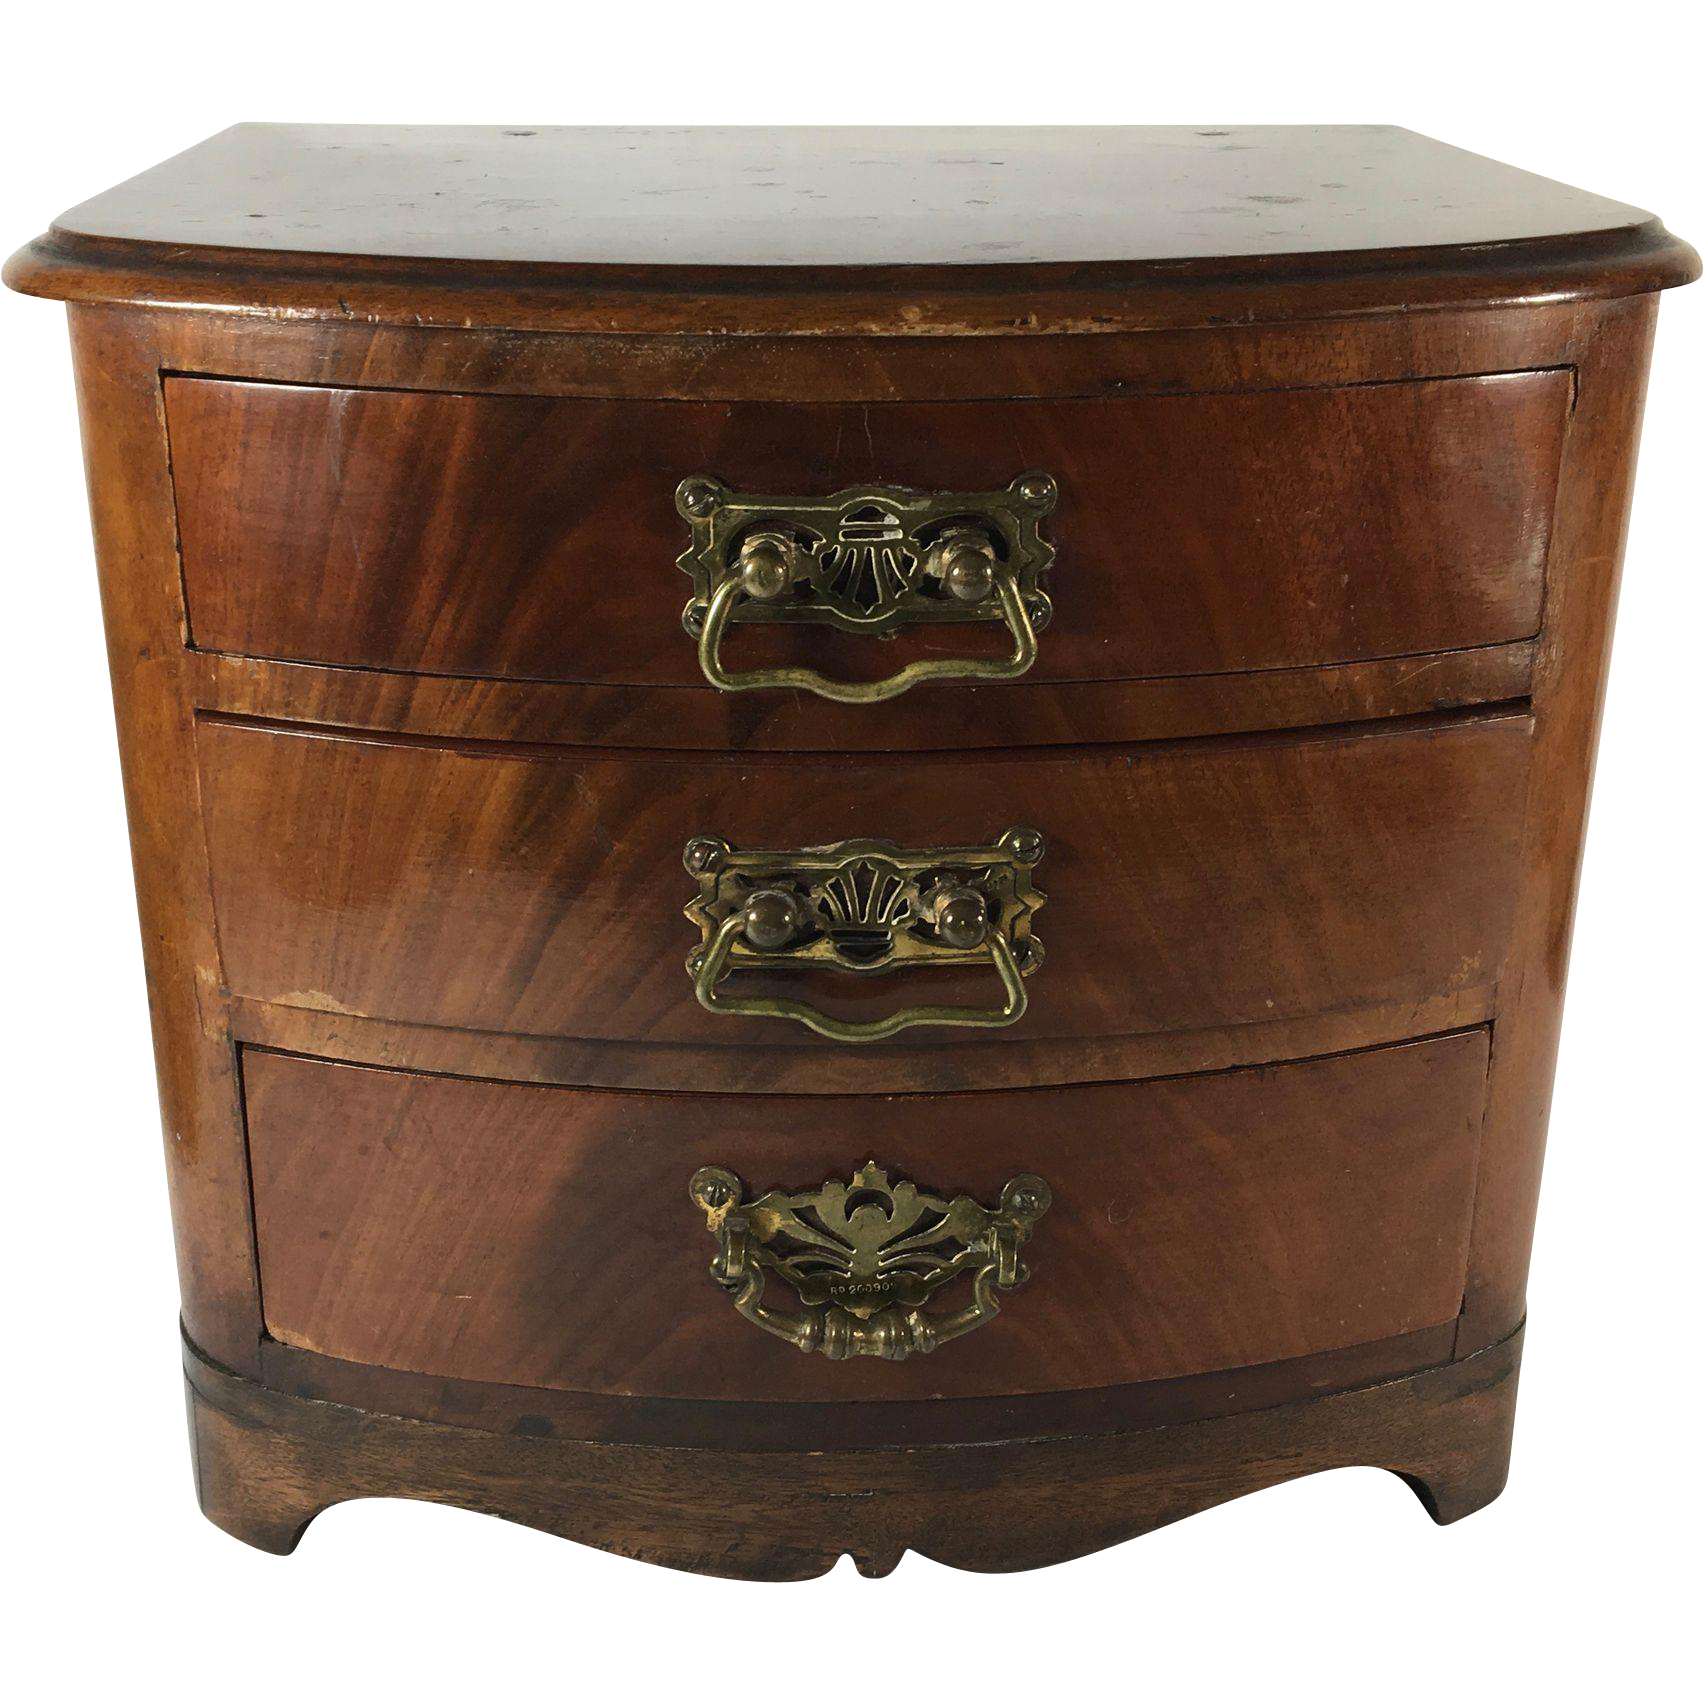 Flame Mahogany English Miniature Chest of Drawers, c. 1893